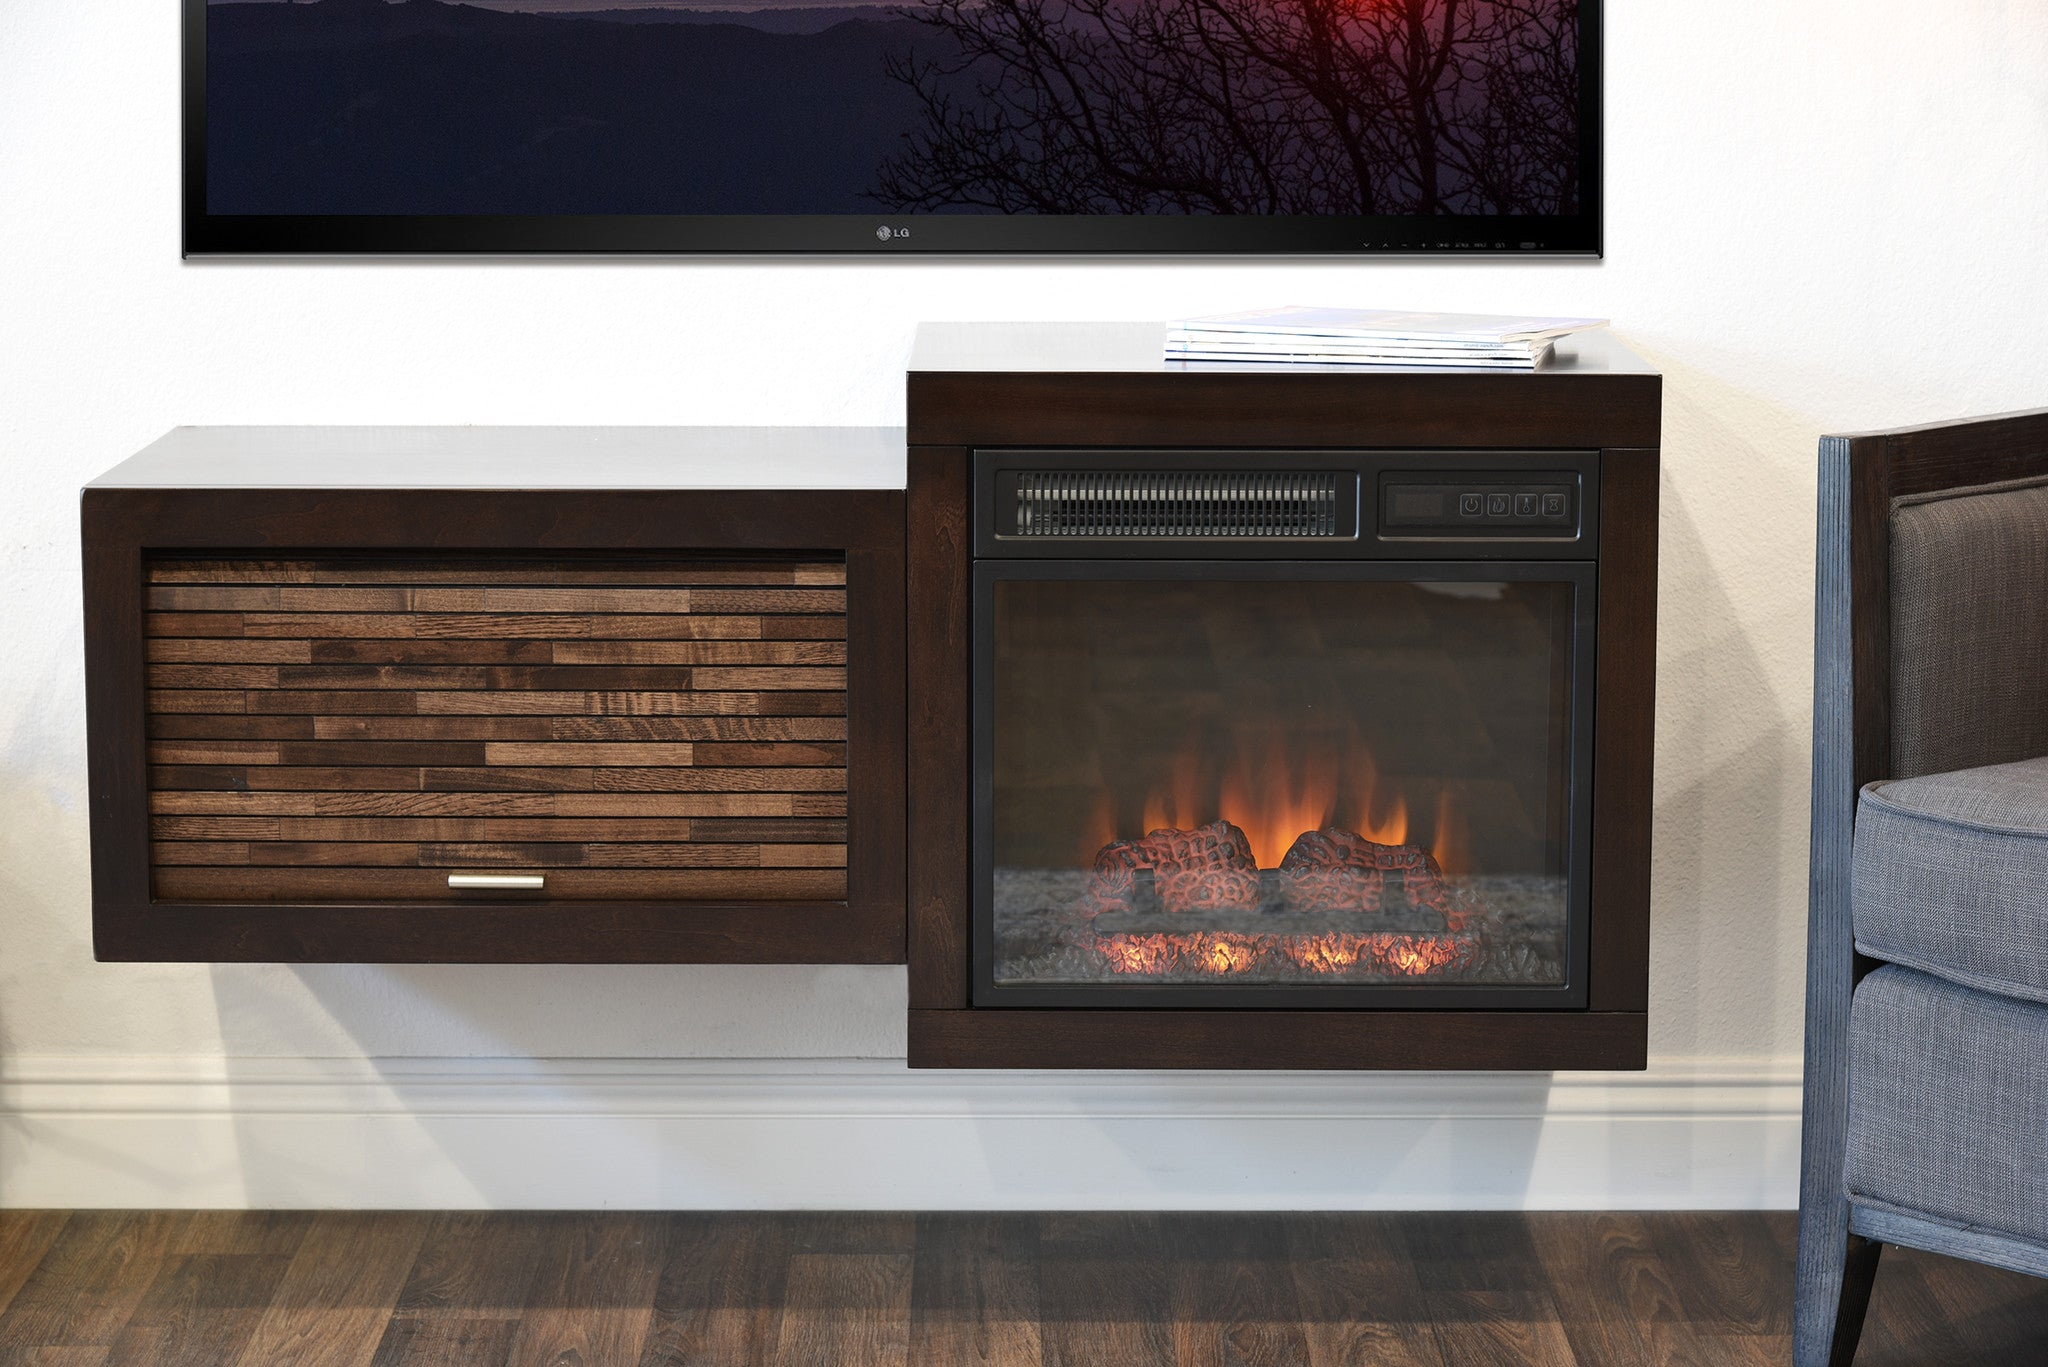 Save $$ With This Bundle! Mid Century Modern Retro Floating Media Console With Fireplace The Eco Geo is a unique eco-friendly modular entertainment consolewhich is handcrafted of solid Poplar and genuine Maple veneers.  This bundle includes our ele